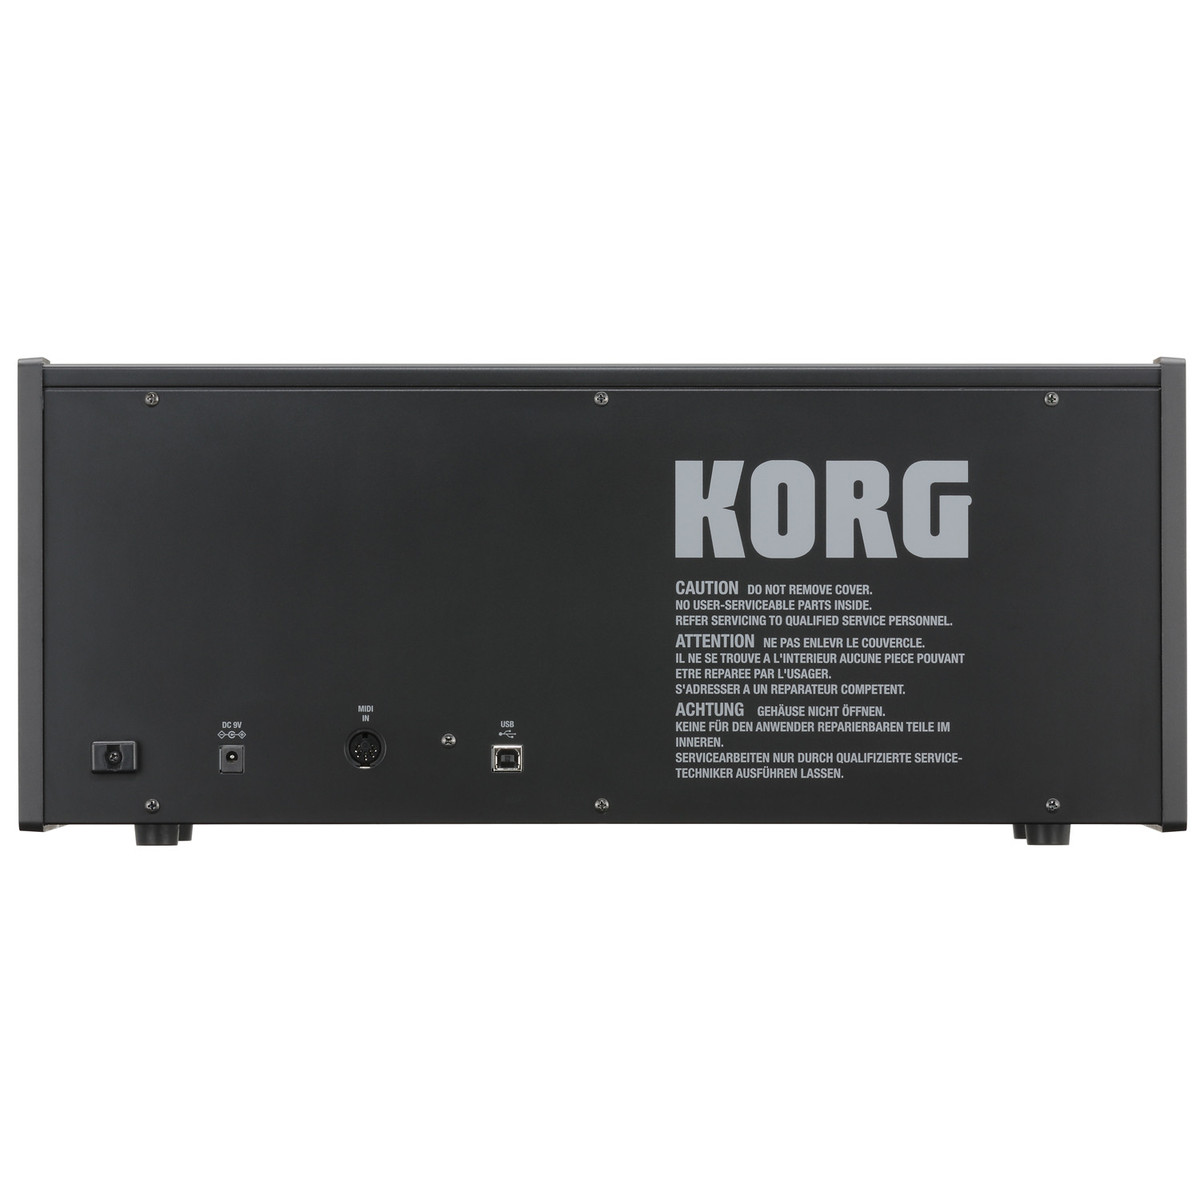 korg ms 20 mini monophonic analog synthesizer at gear4music. Black Bedroom Furniture Sets. Home Design Ideas